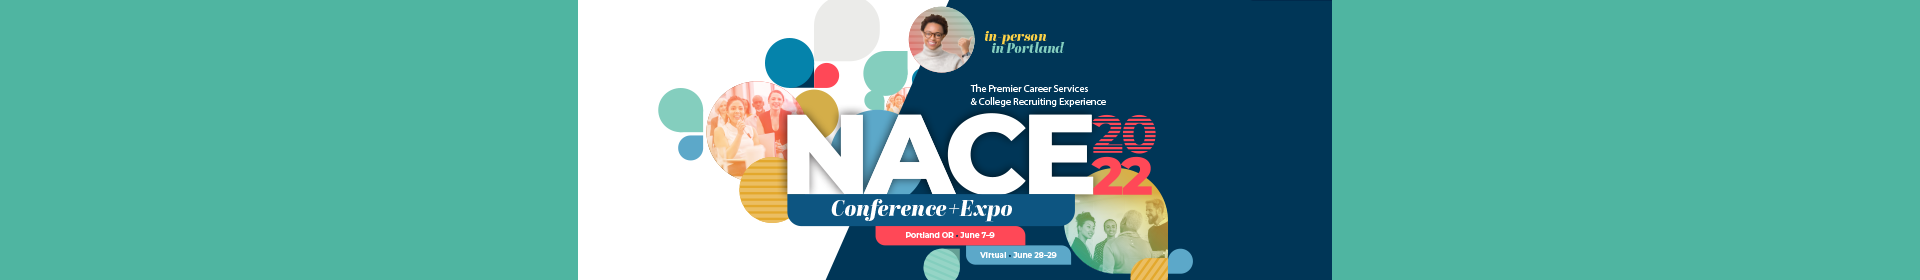 NACE22 Conference and Virtual Event Event Banner